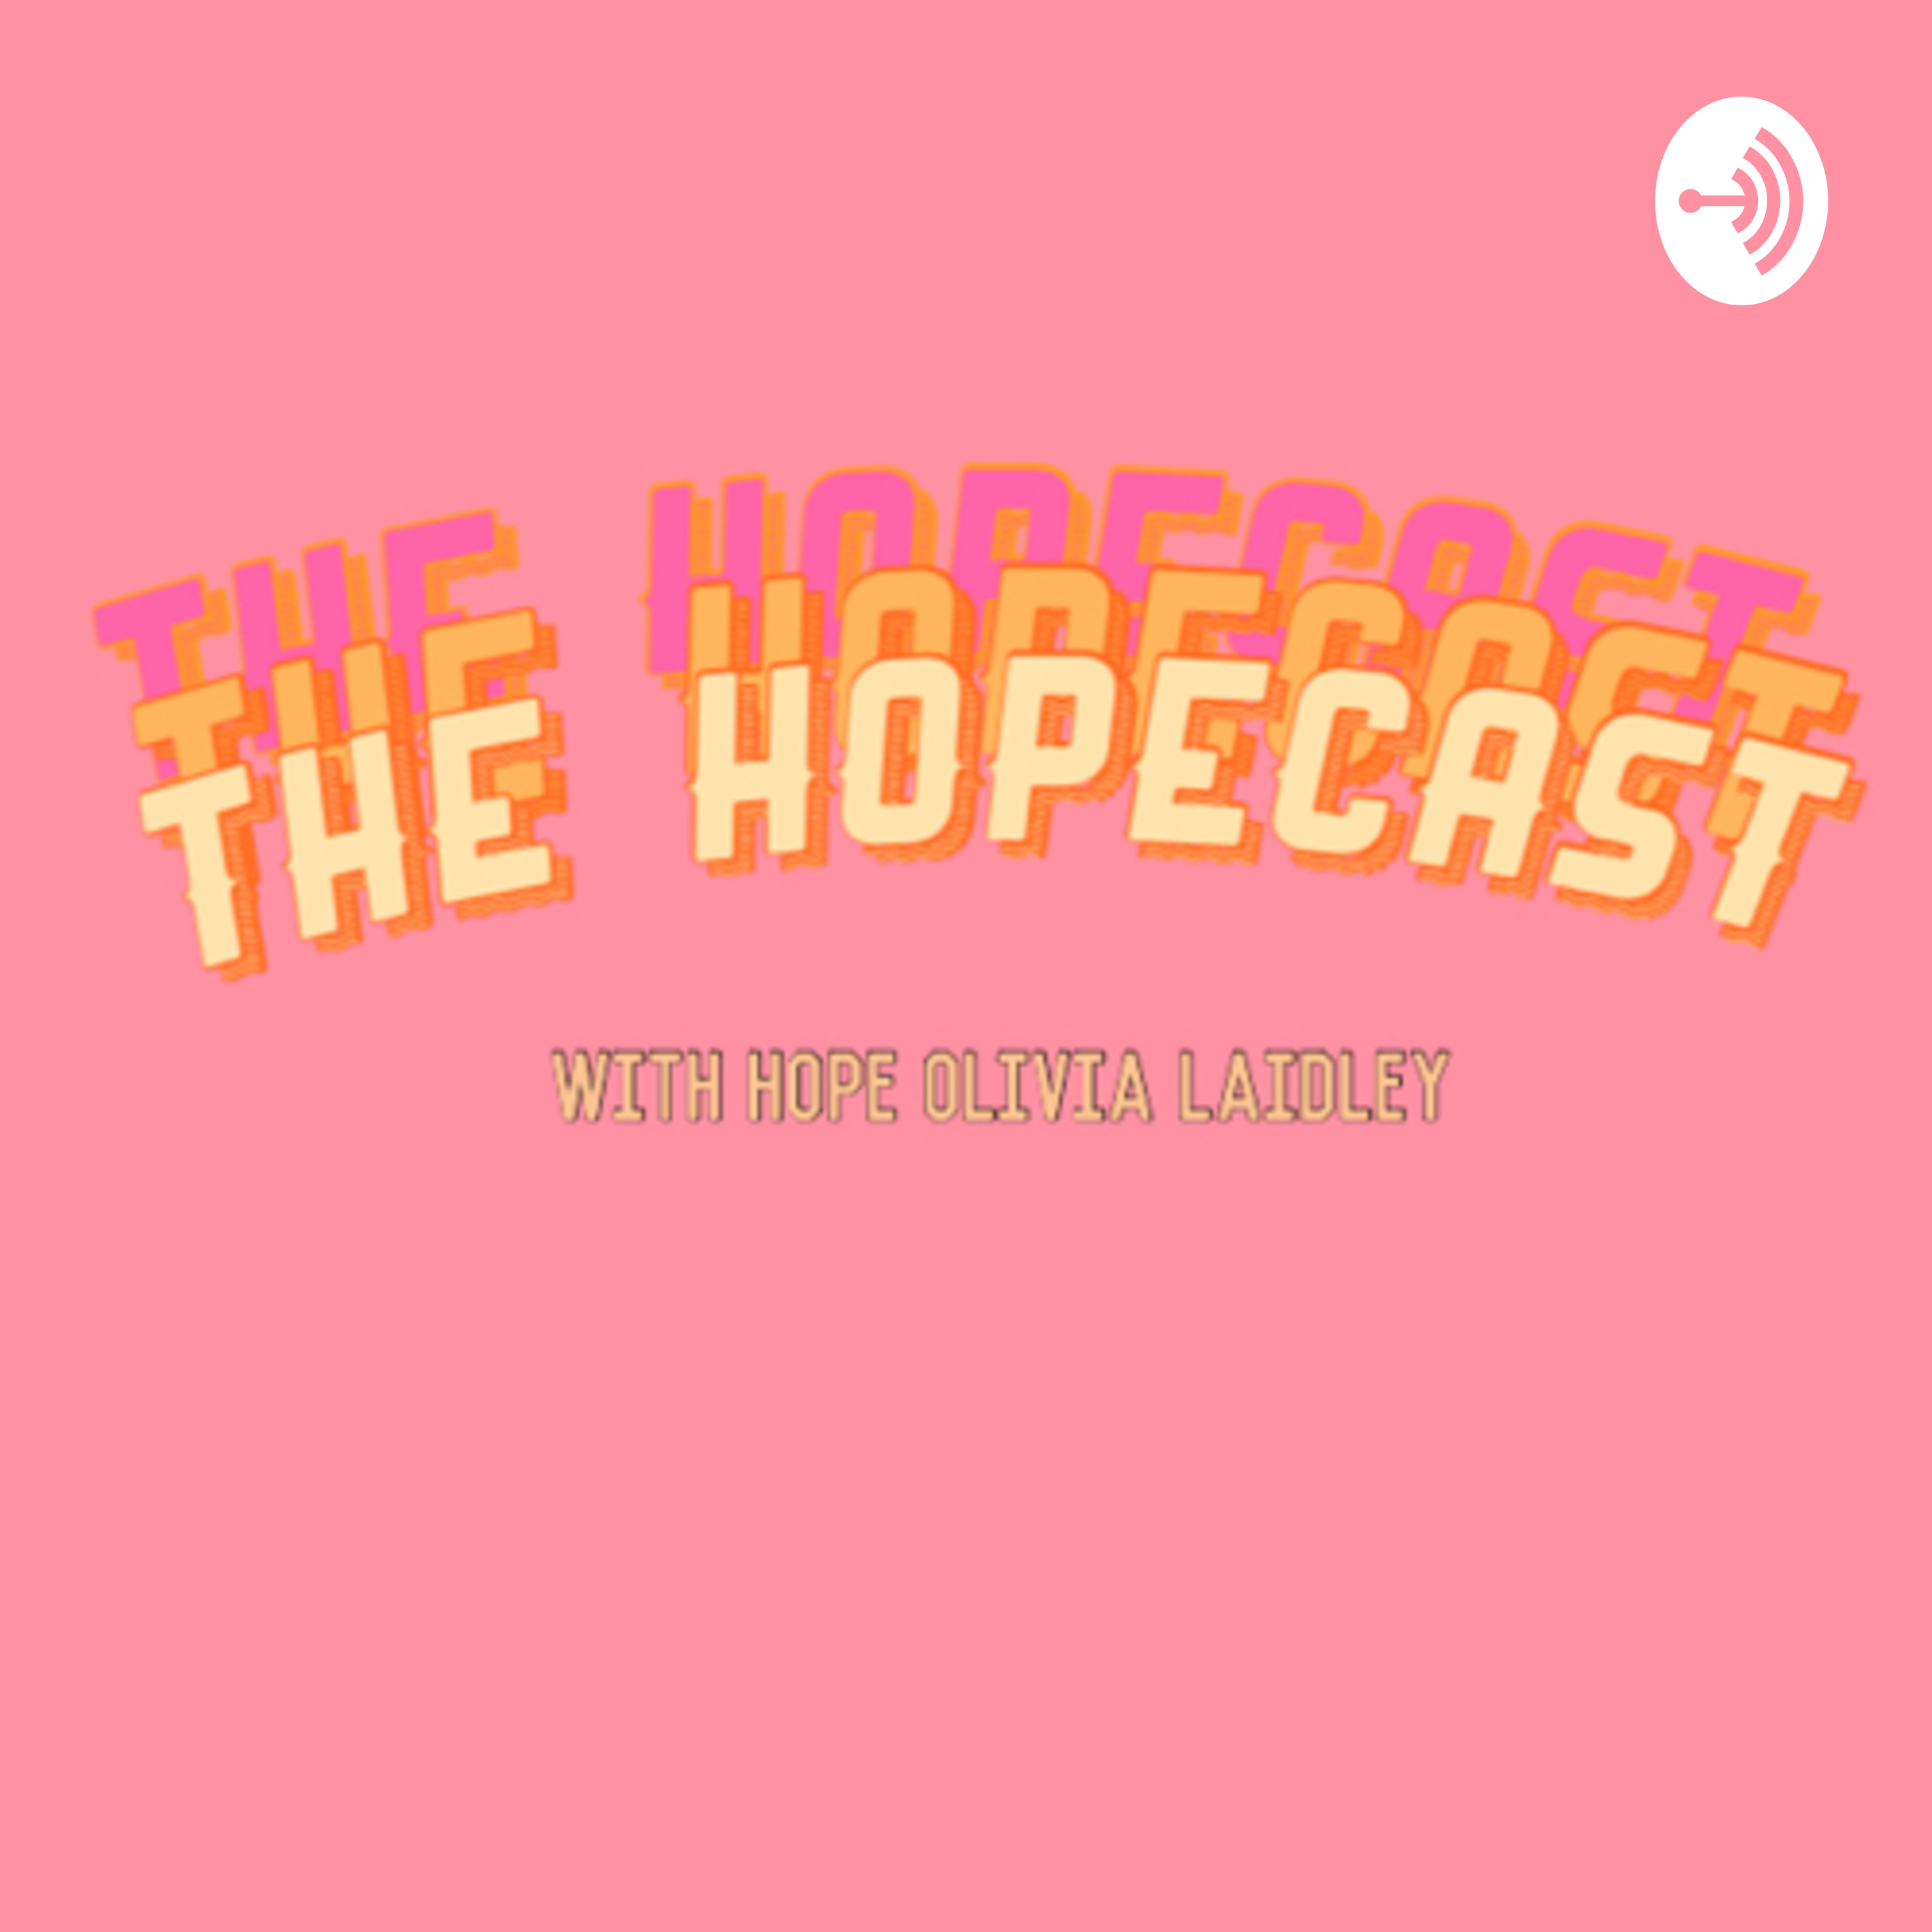 The Hopecast (Trailer)